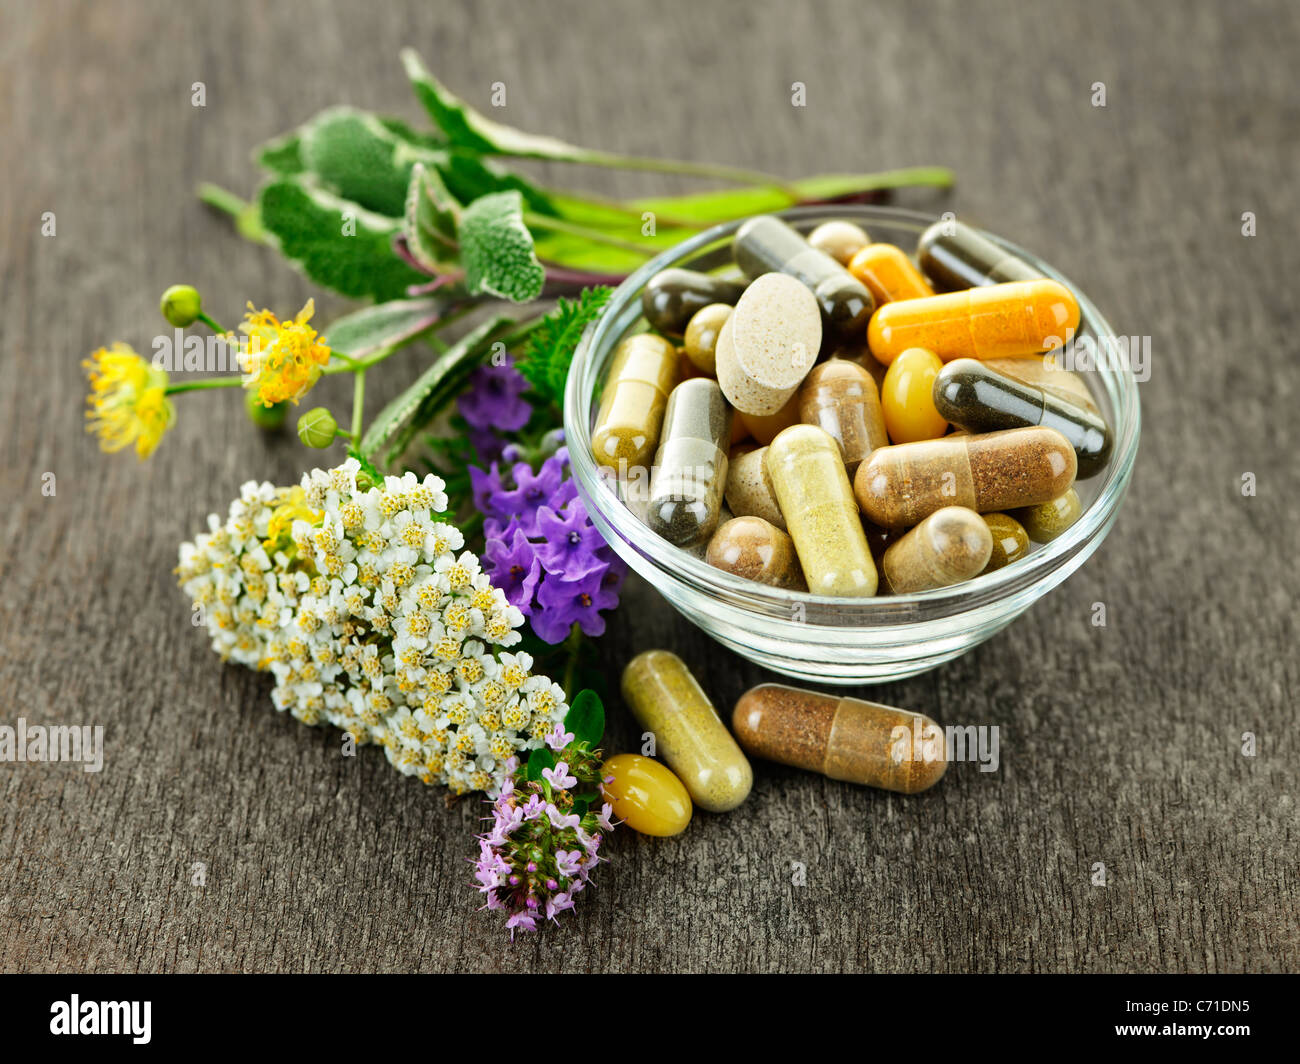 Herbs with alternative medicine herbal supplements and pills - Stock Image